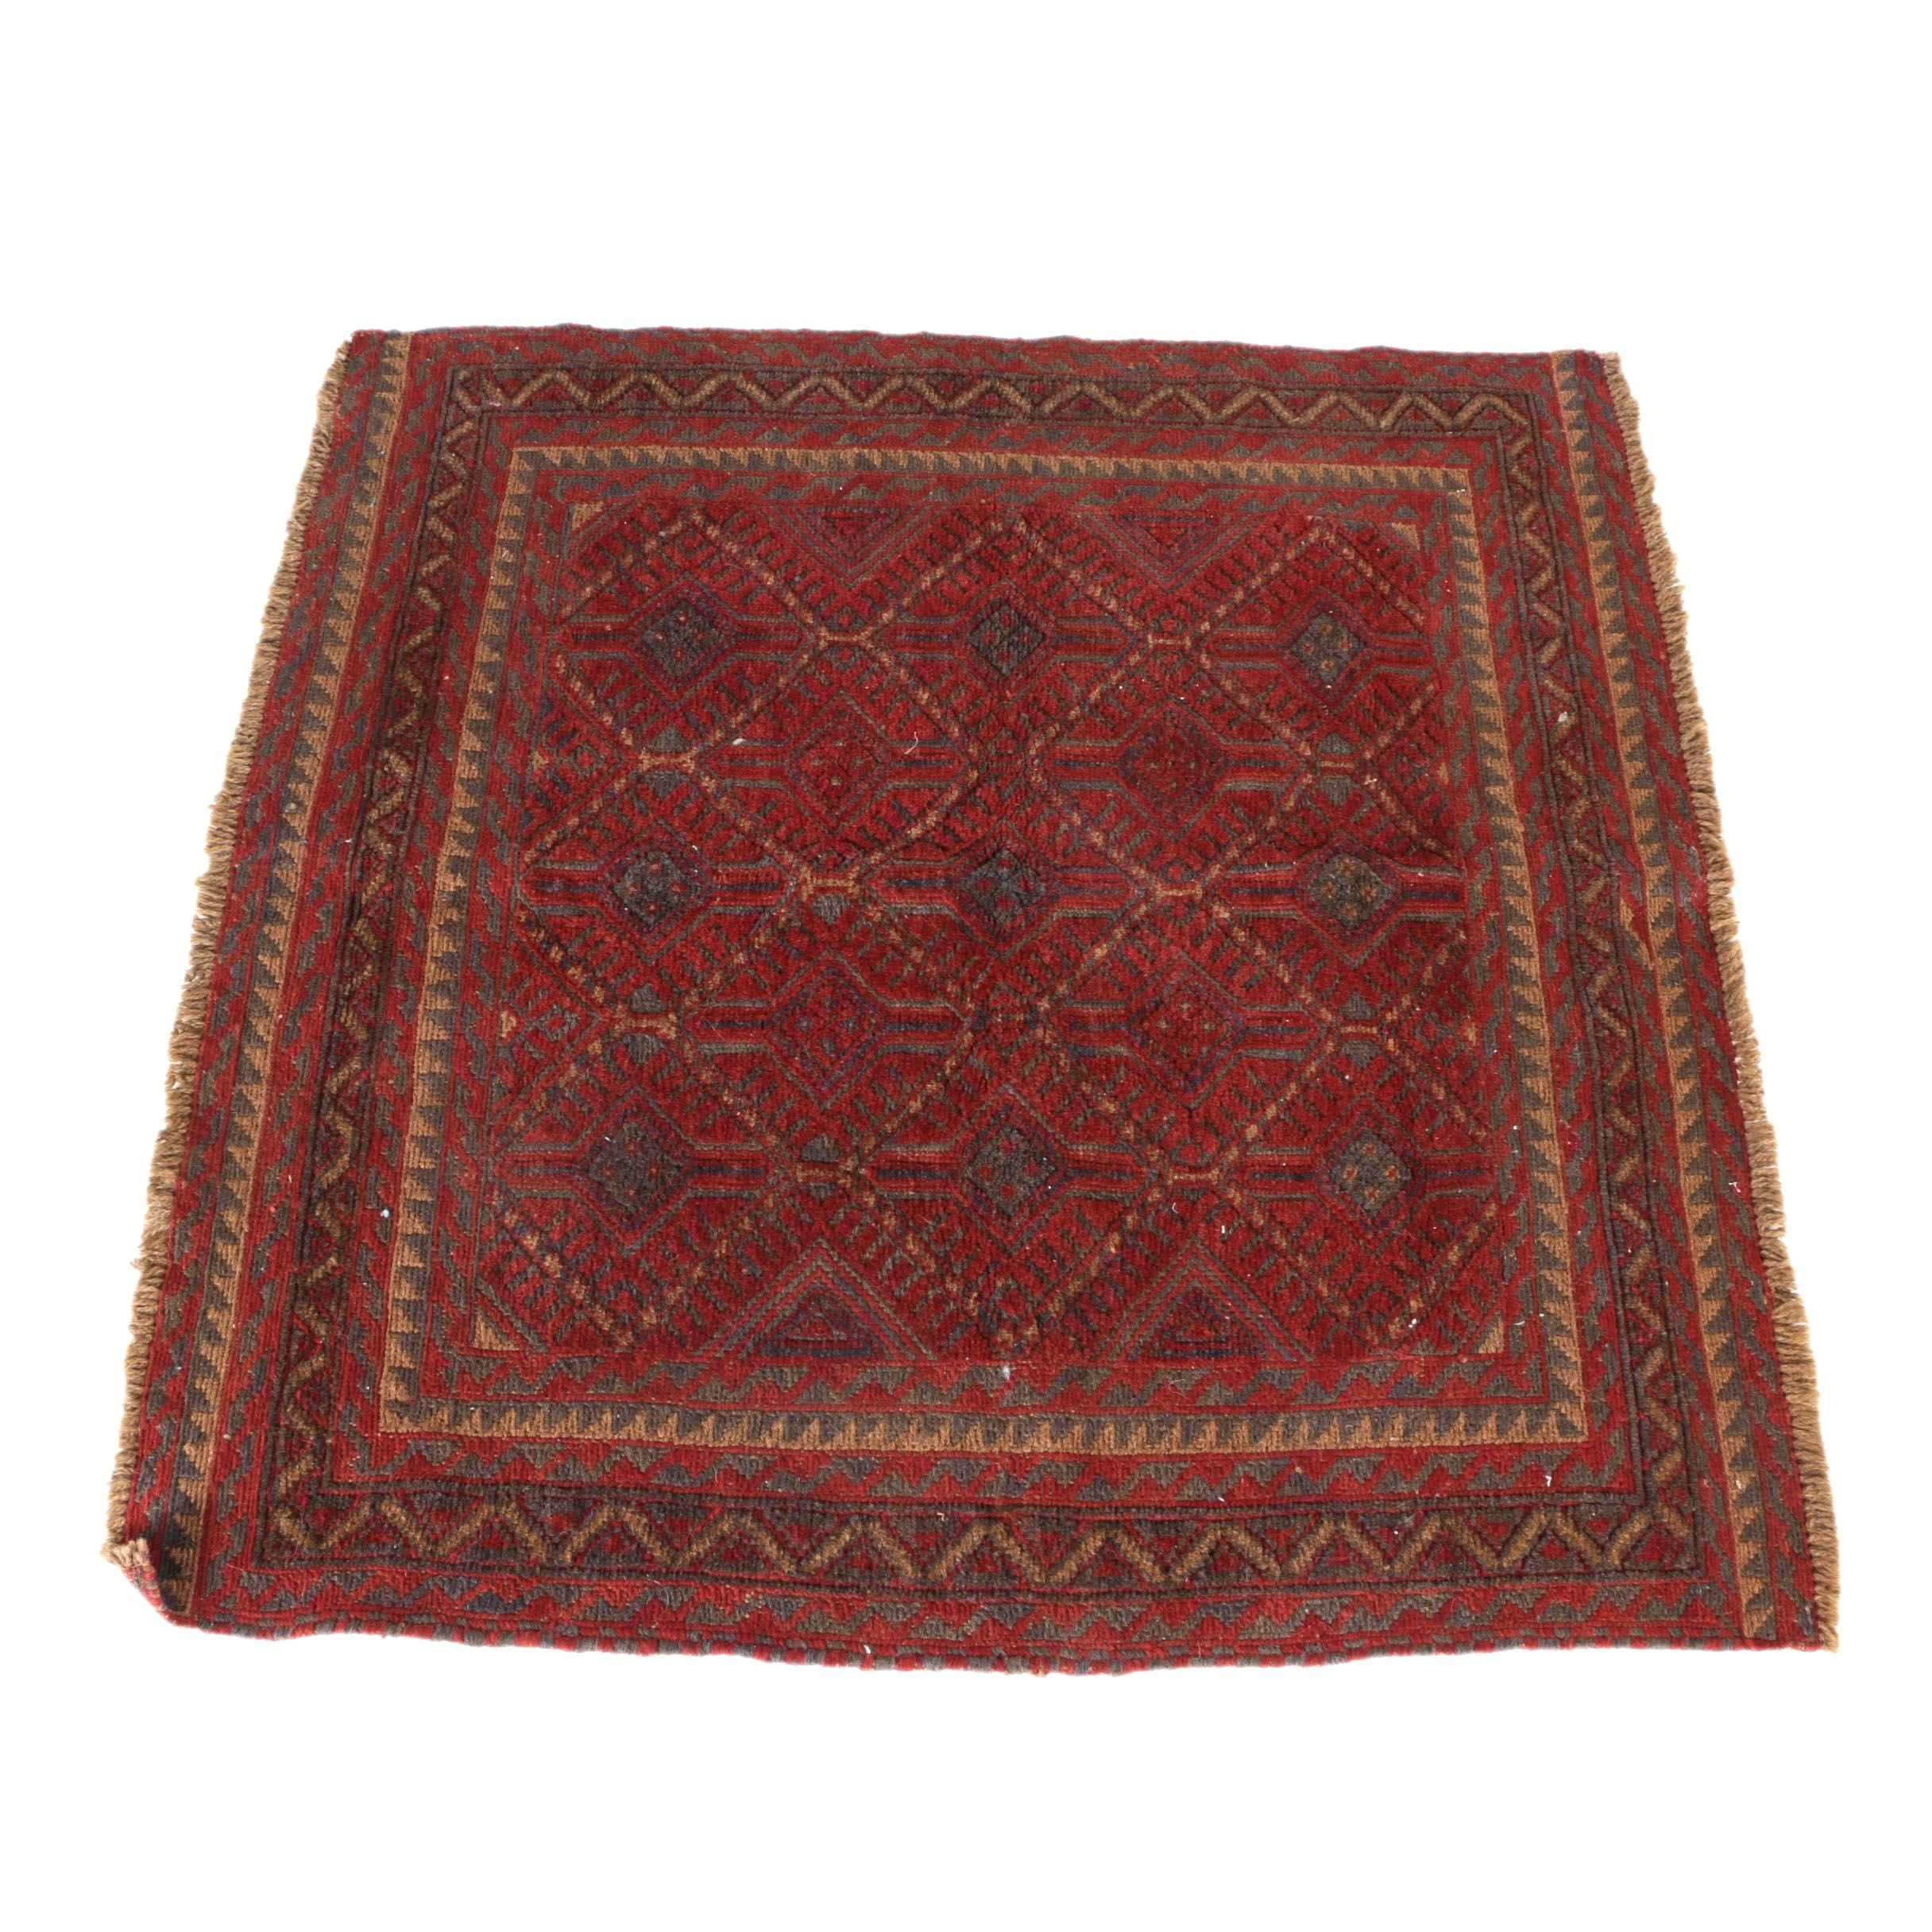 Handwoven Baluch Square Area Rug